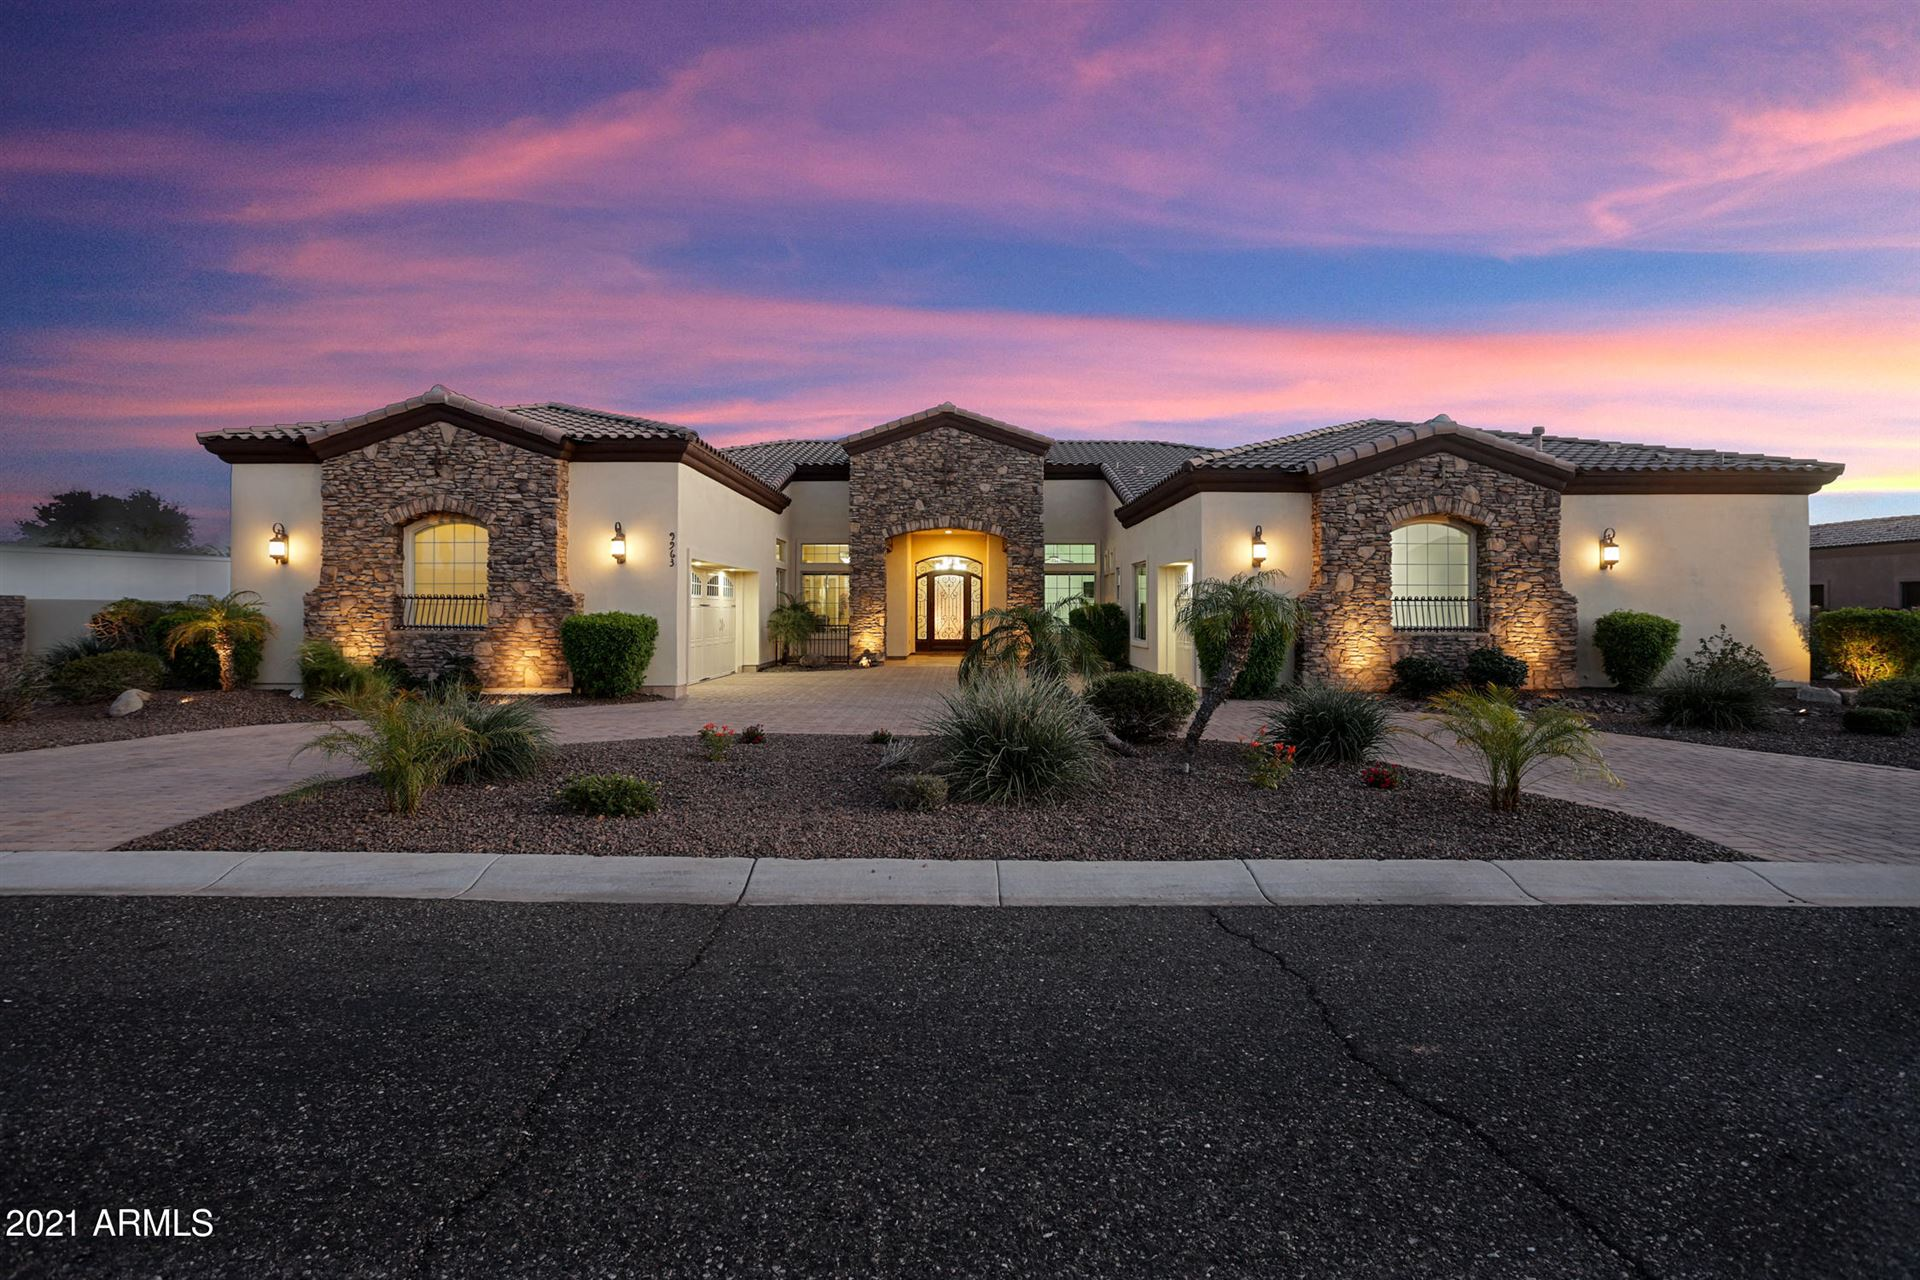 Photo of 9963 W VILLA LINDO Drive, Peoria, AZ 85383 (MLS # 6188685)